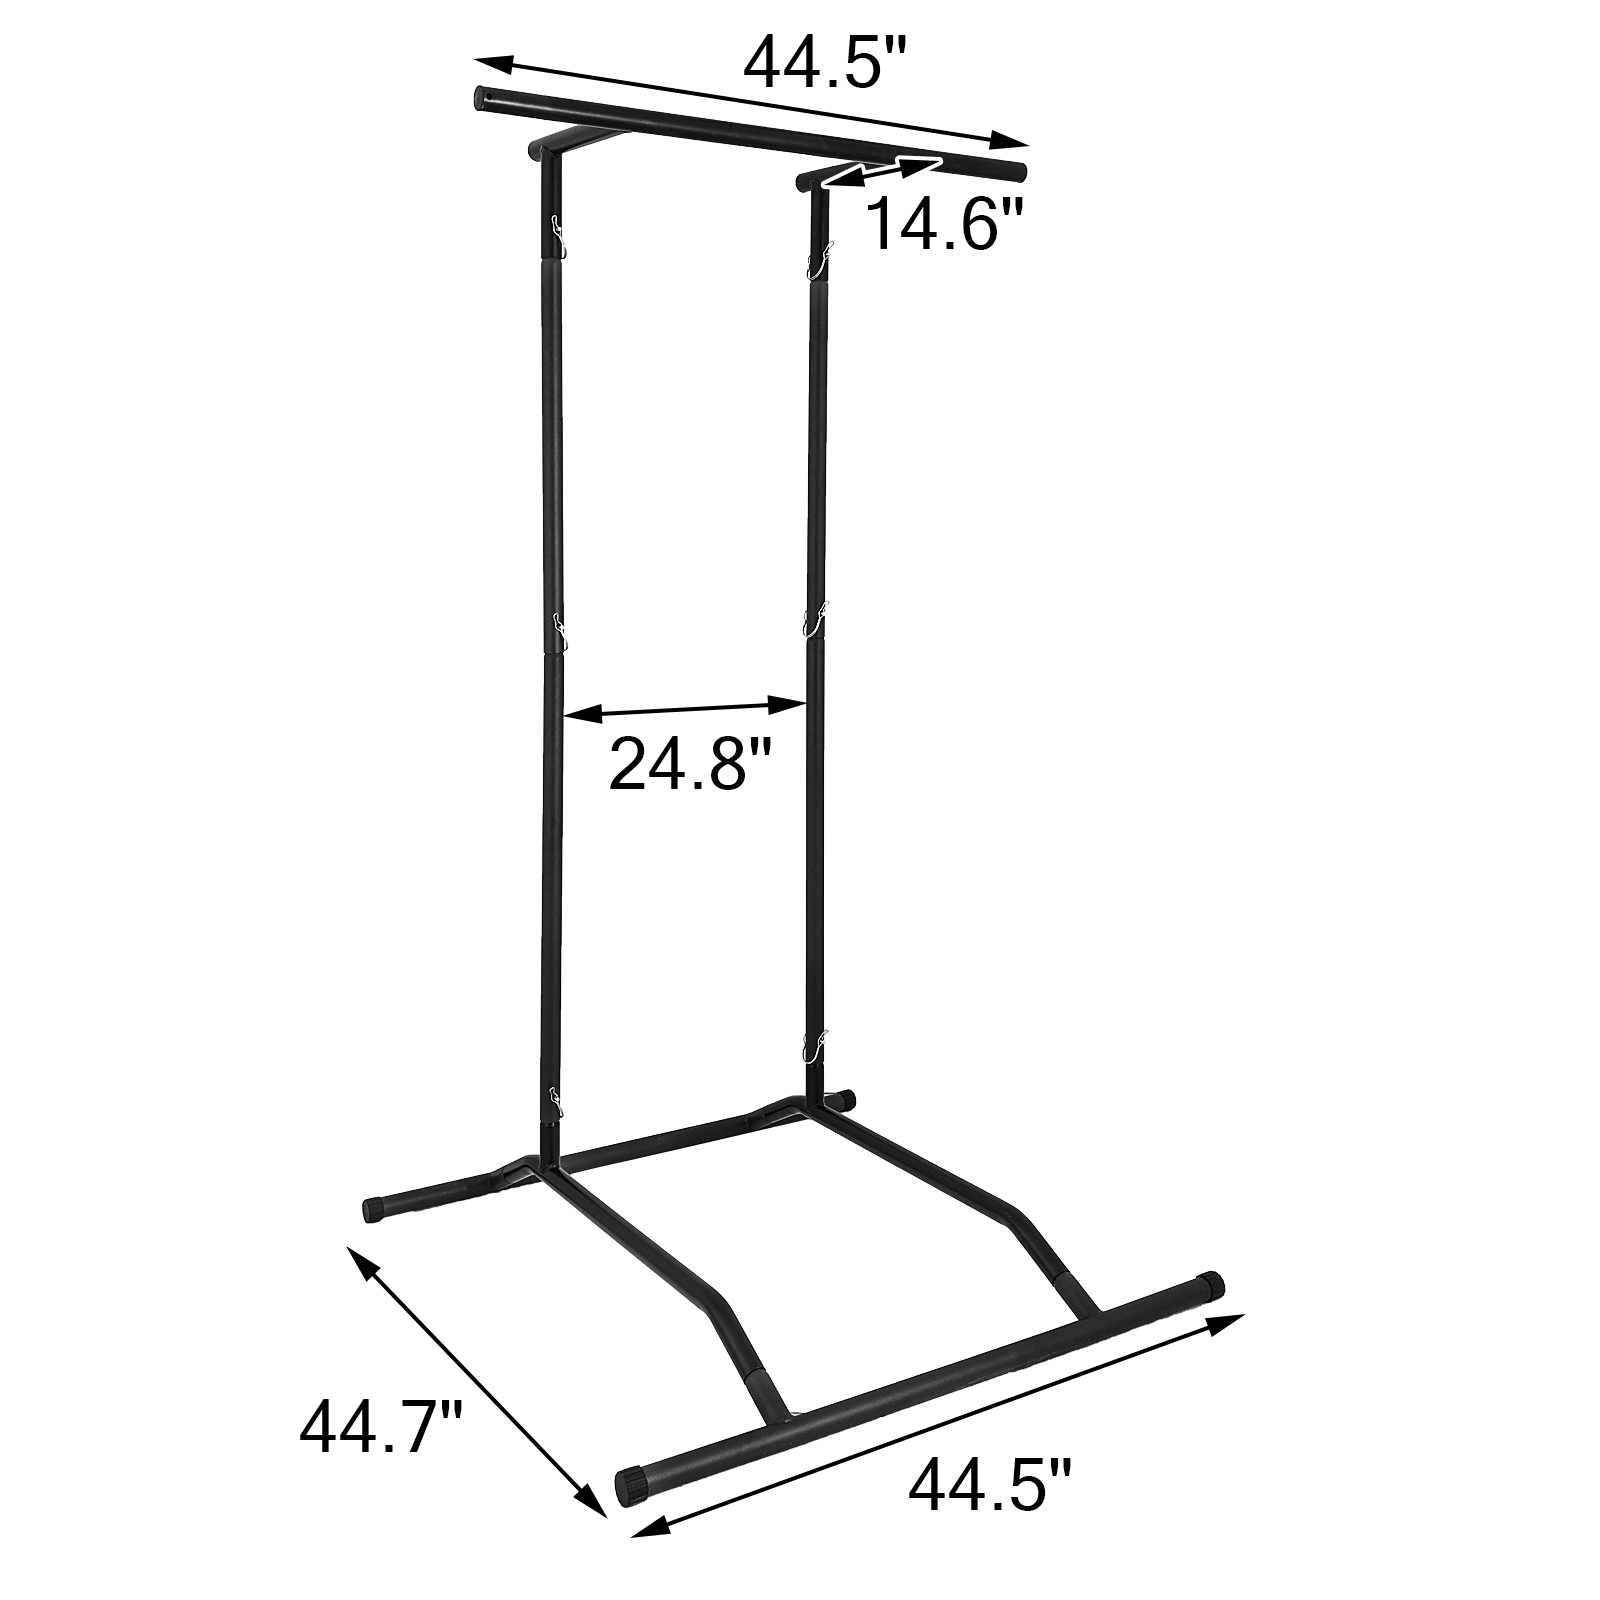 Portable-Power-Tower-for-Home-Gym-Workout-With-Dip-Station-And-Chin-Pull-Up-Bar thumbnail 38